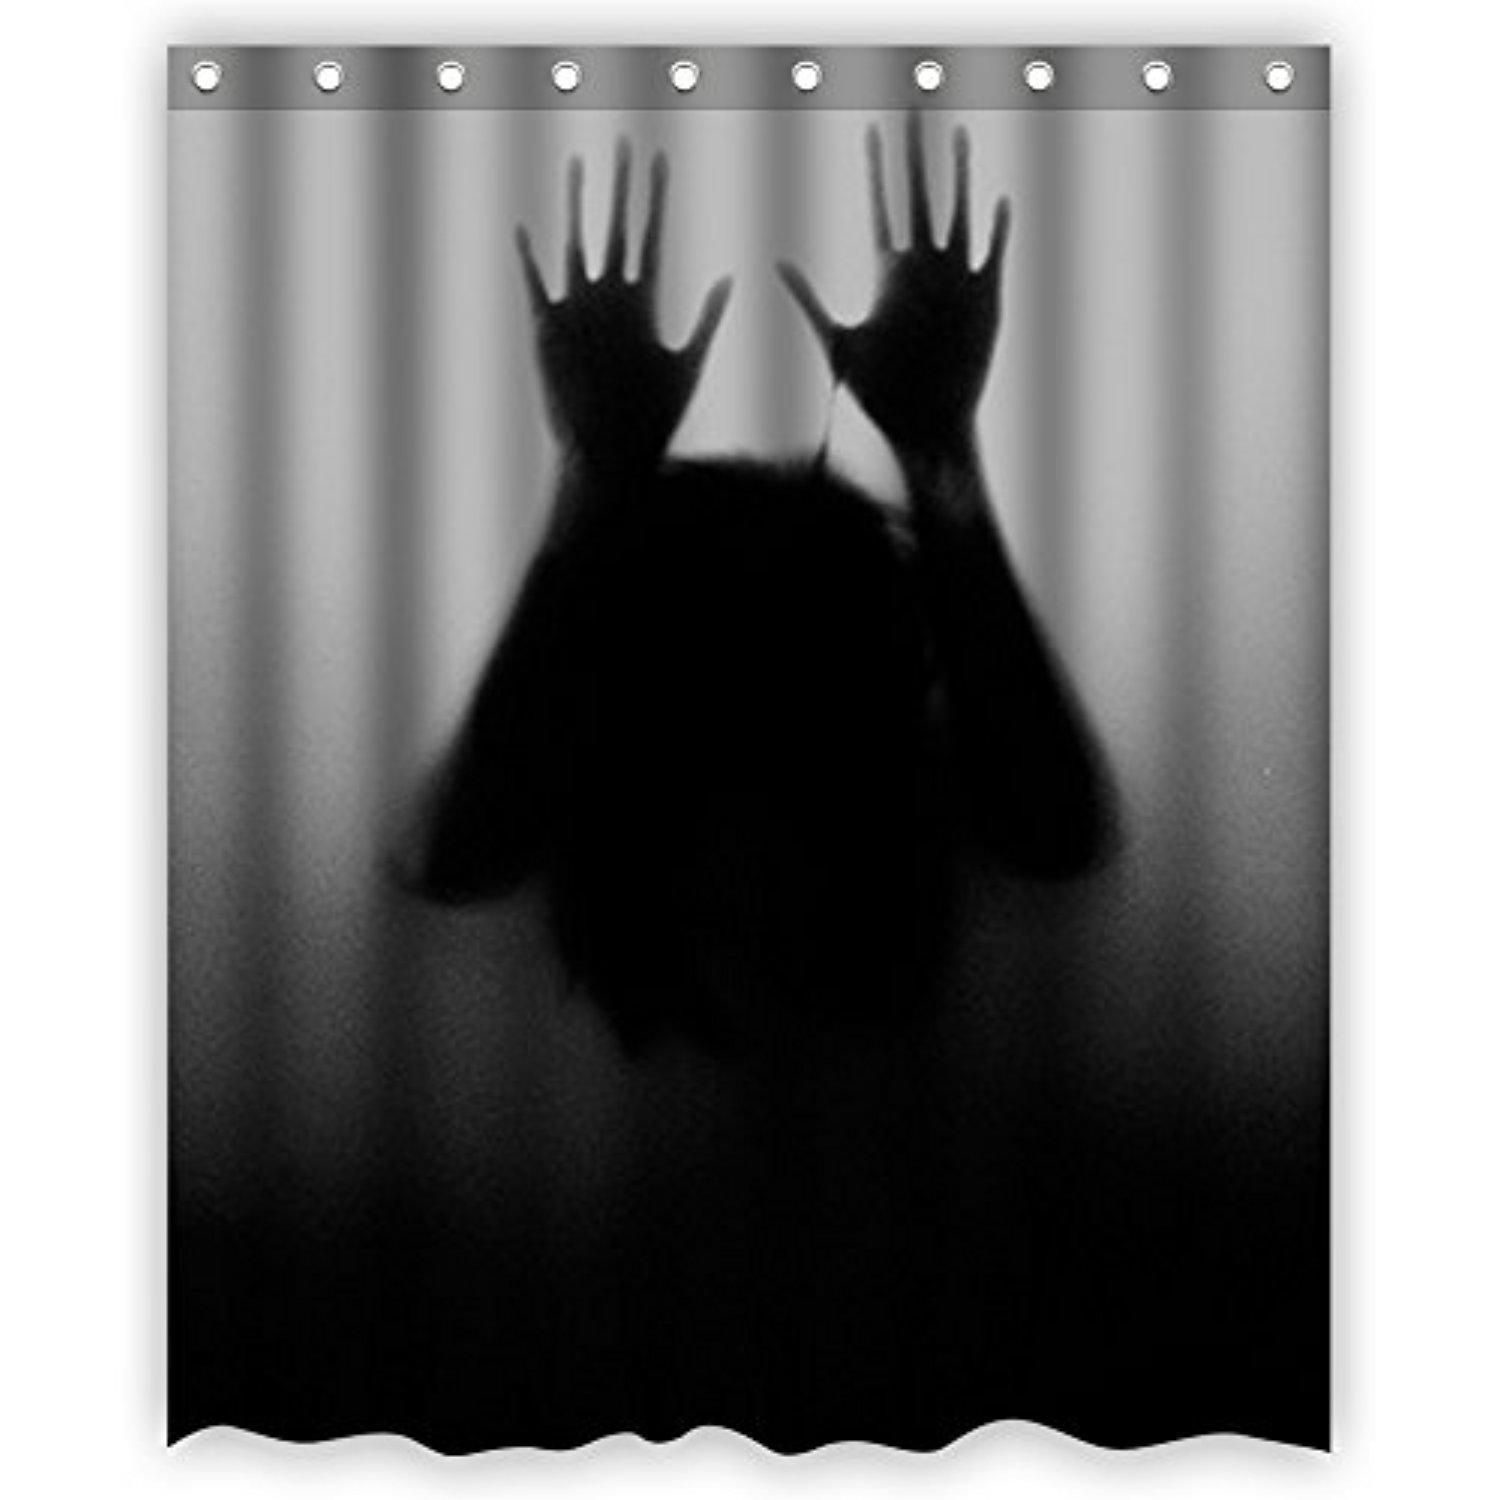 Bart Help Me Ghost Horror Shadow of Hands Behind Frosted Glass ...